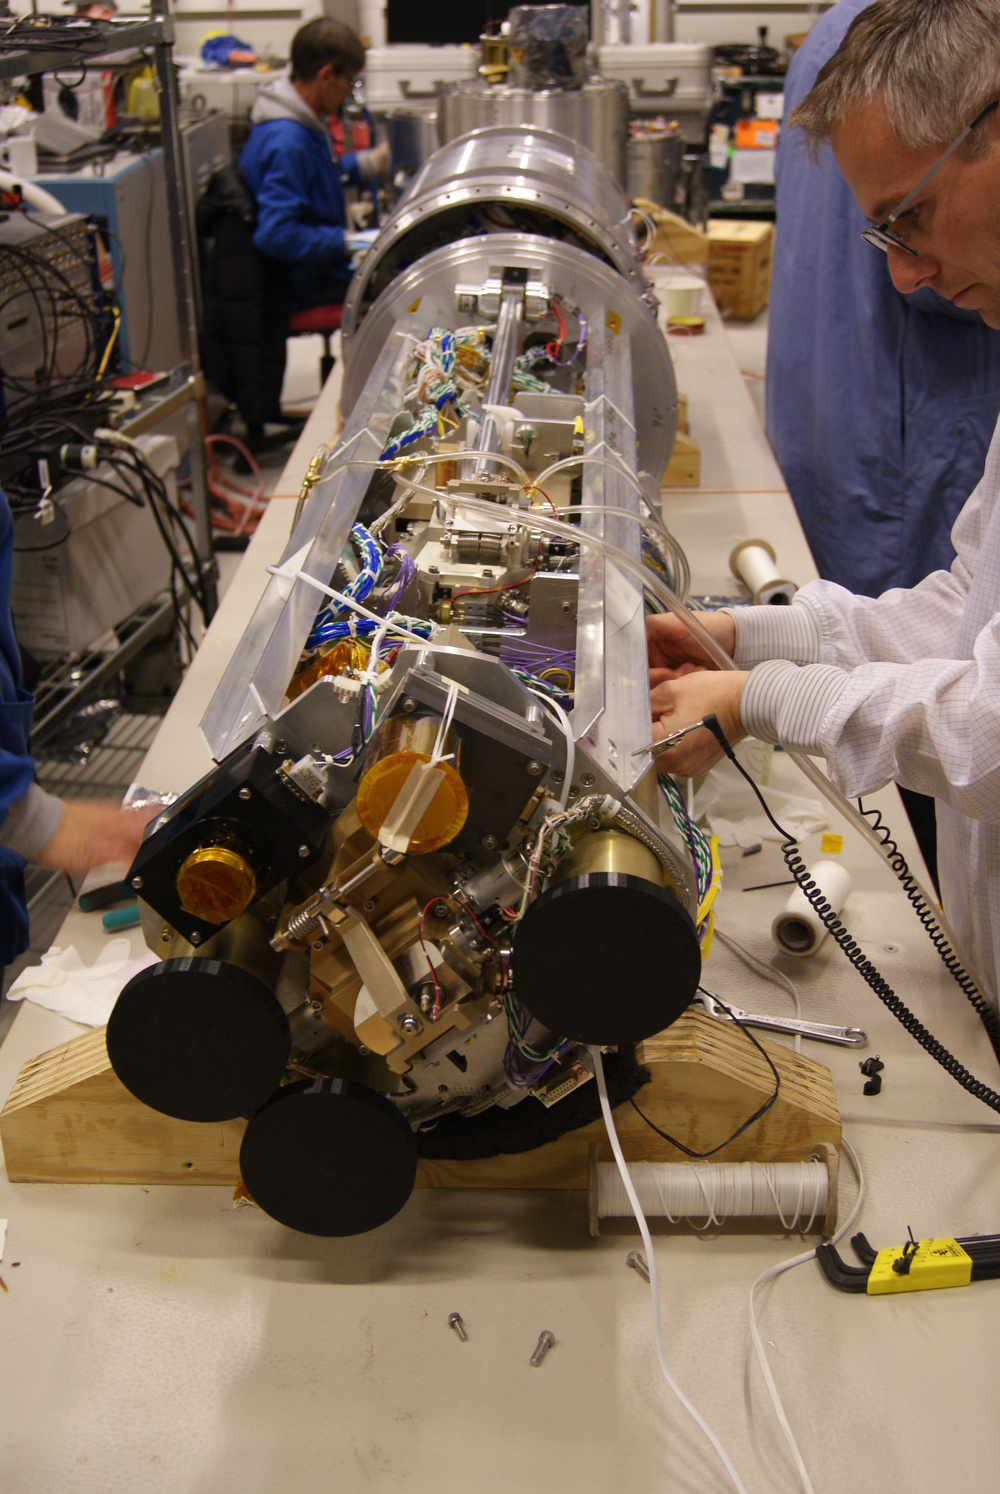 Team members work on the RENU 2 sounding rocket weeks before its launch window opens Nov. 27, 2015. Scientists will have to wait for favorable weather conditions and the presence of a daytime aurora before they can launch. RENU 2, short for Rocket Experiment for Neutral Upwelling, will study the relationship between the flowing electrons that create the cusp aurora and dense columns of neutral atoms in the upper atmosphere. - Image Credit: NASA/University of New Hampshire/Bruce Fritz